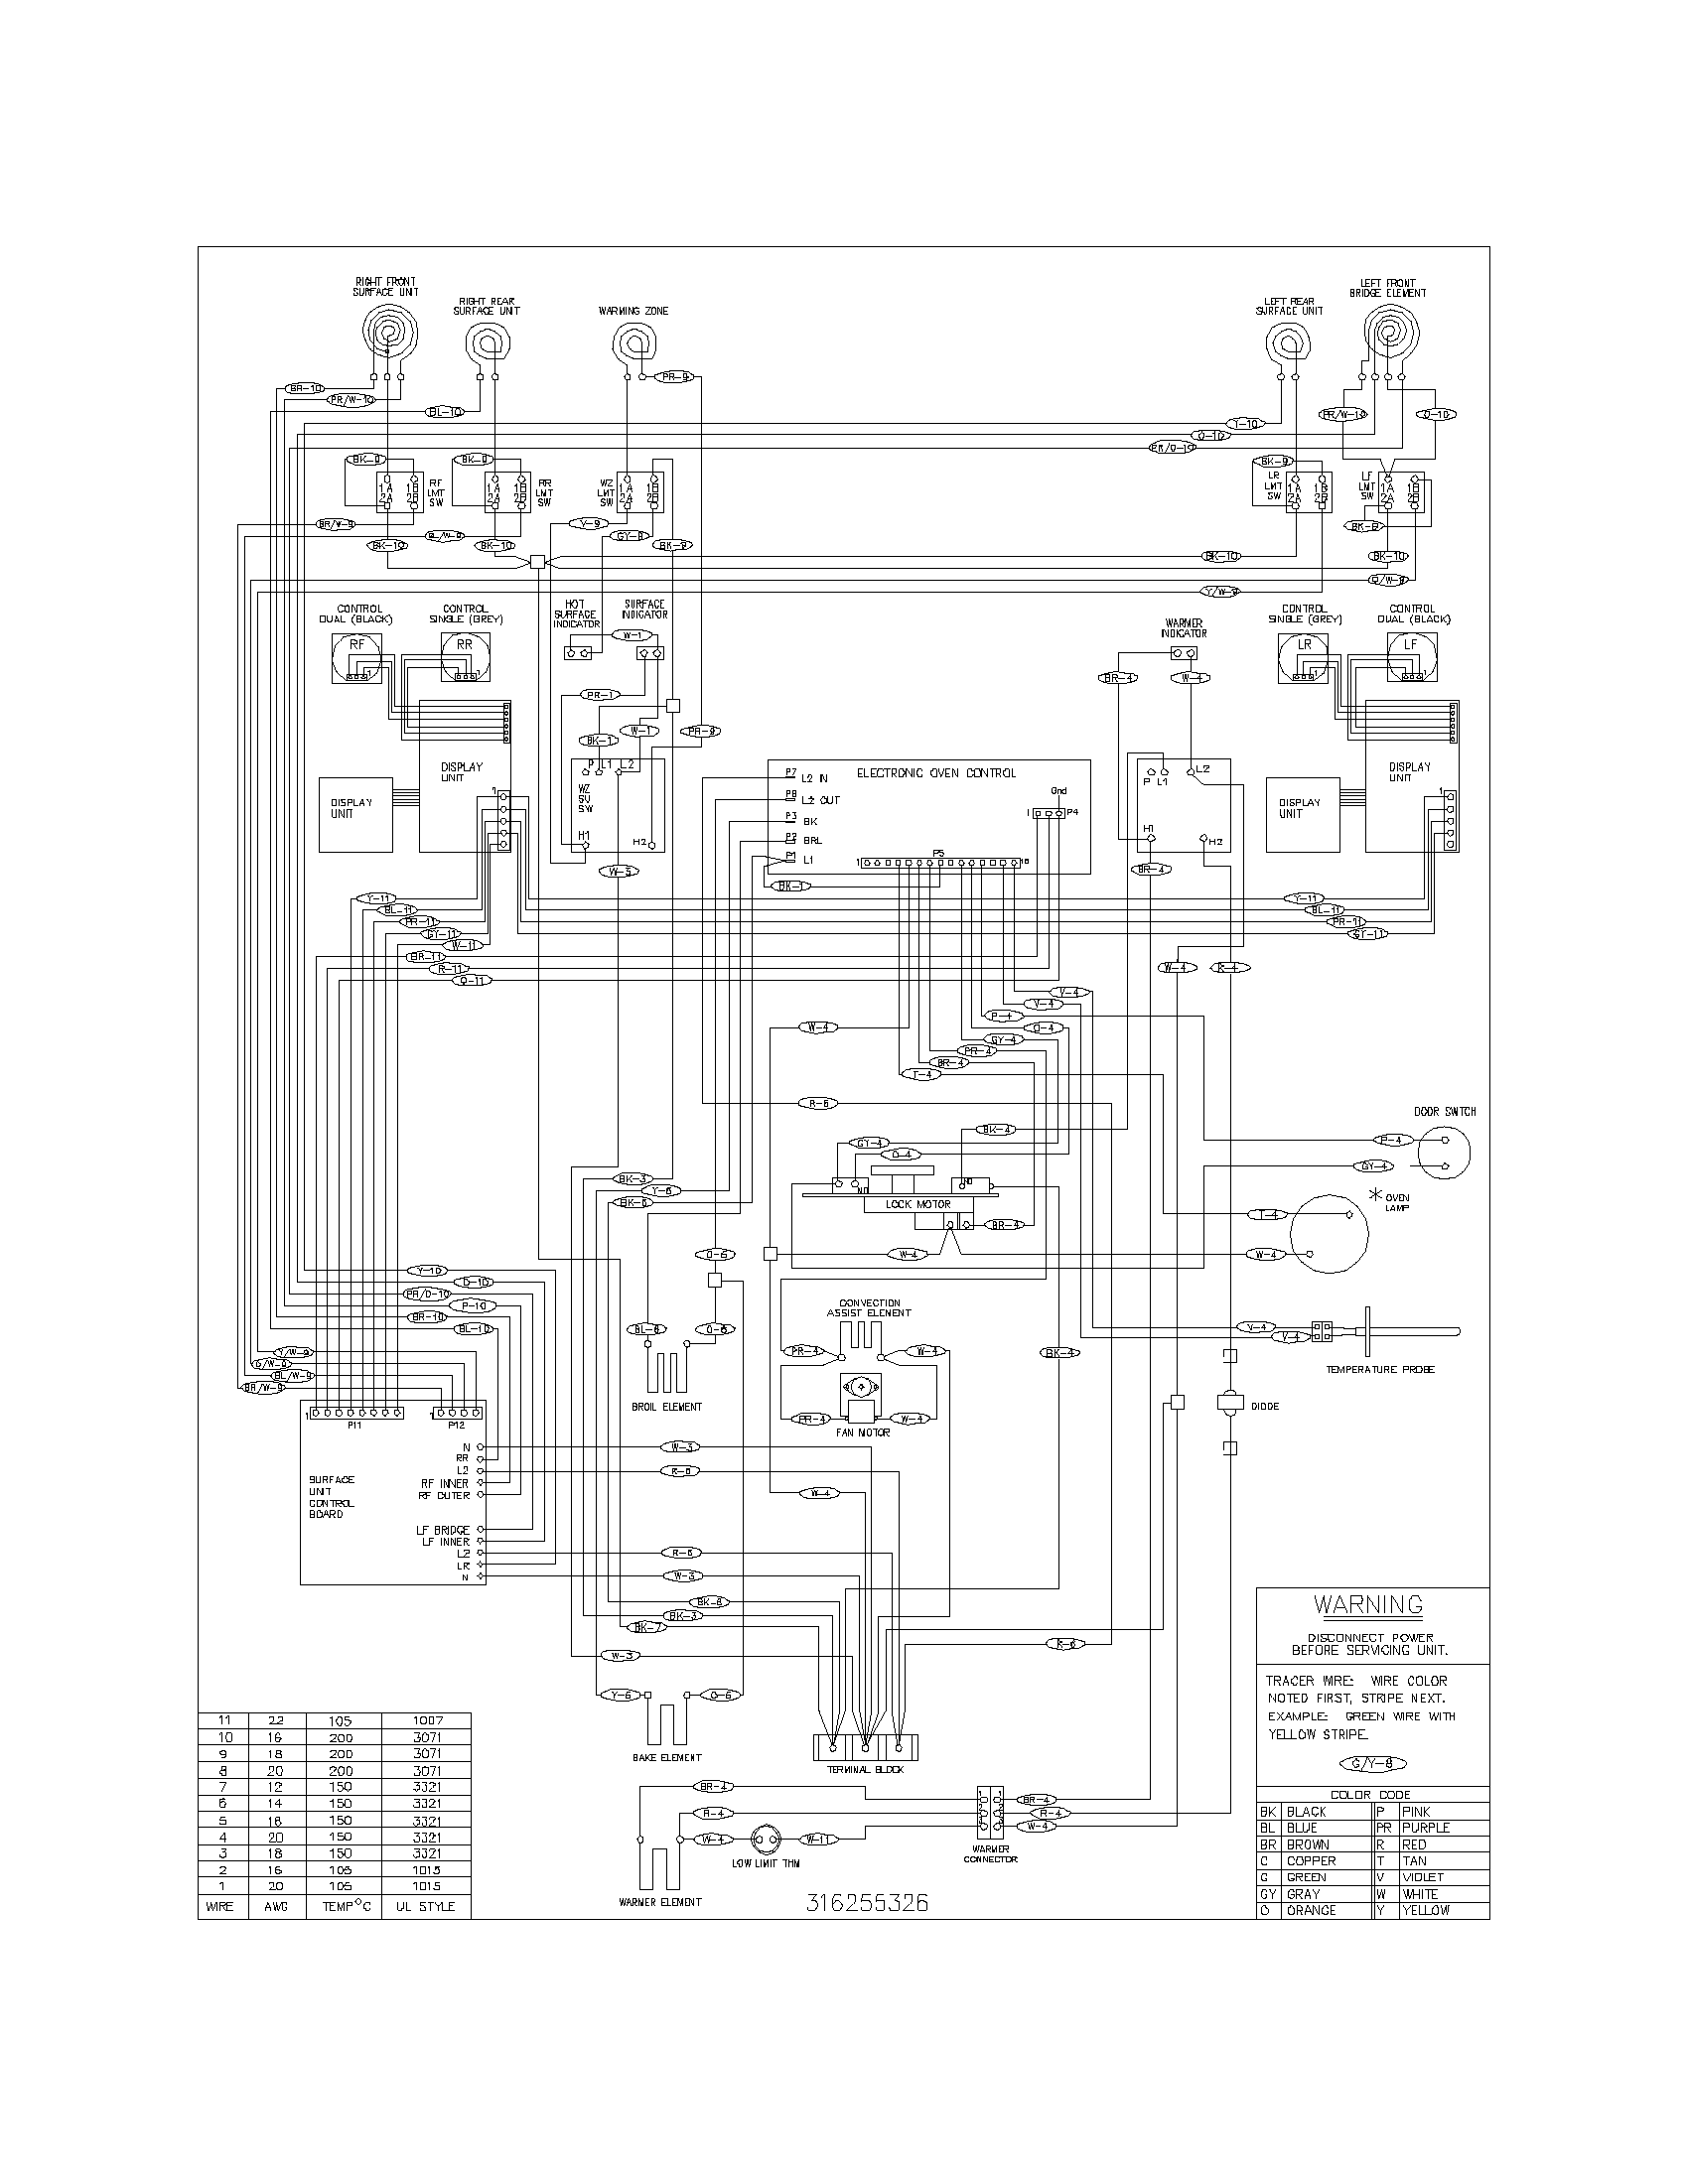 connecting electric cooker diagram